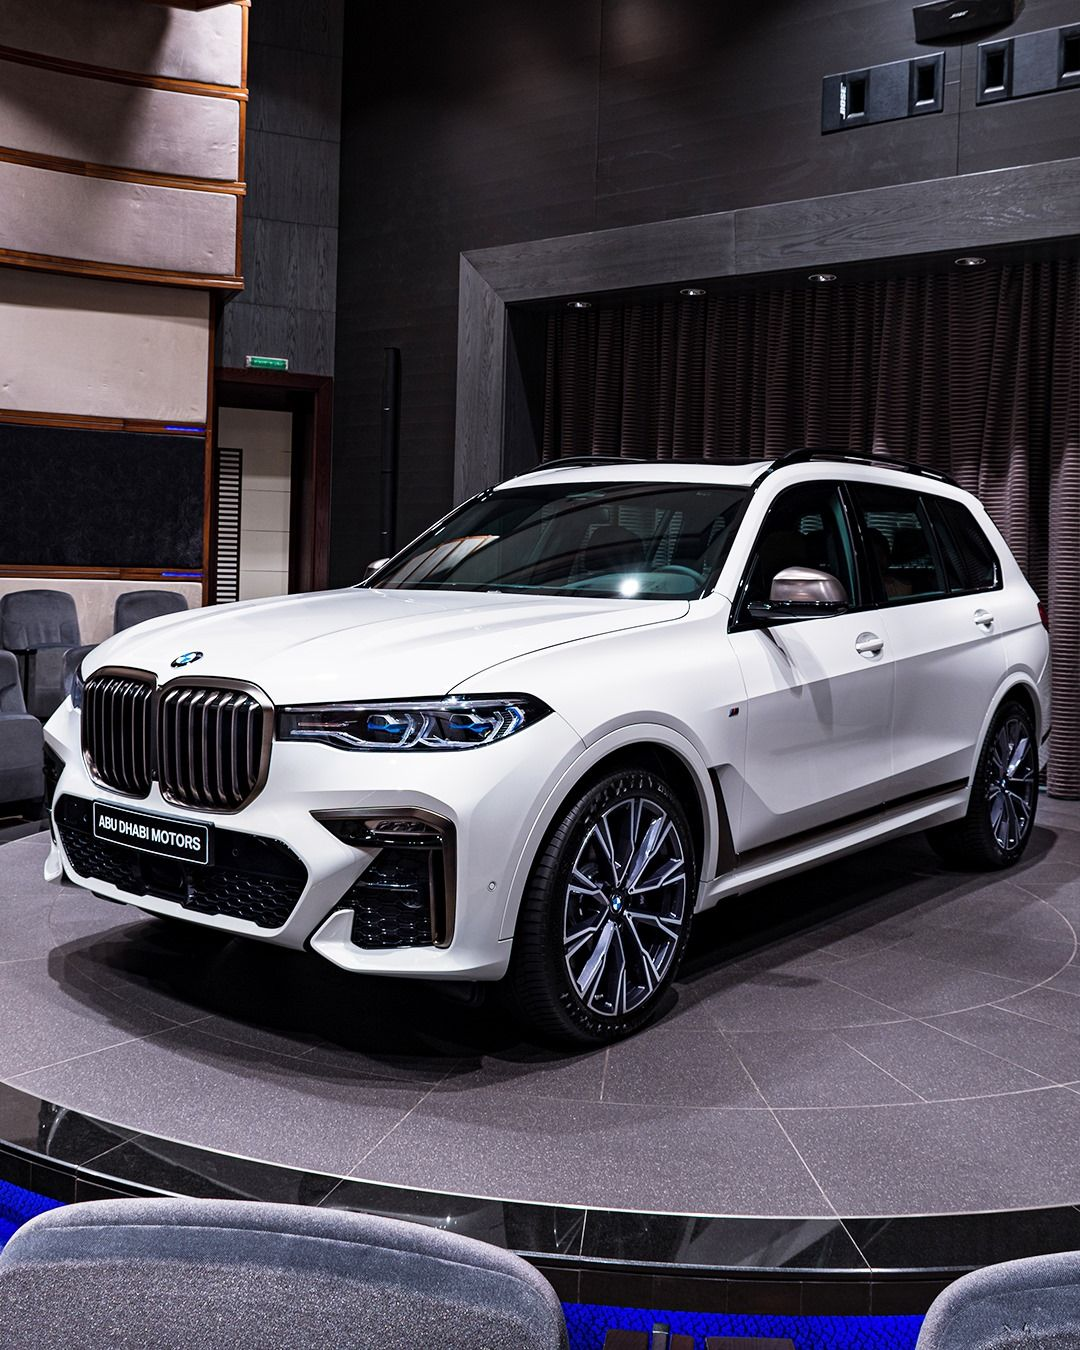 Car And Driver Puts Bmw X7 Against Mercedes Benz Gls Class In 2020 Bmw X7 Bmw Mercedes Benz